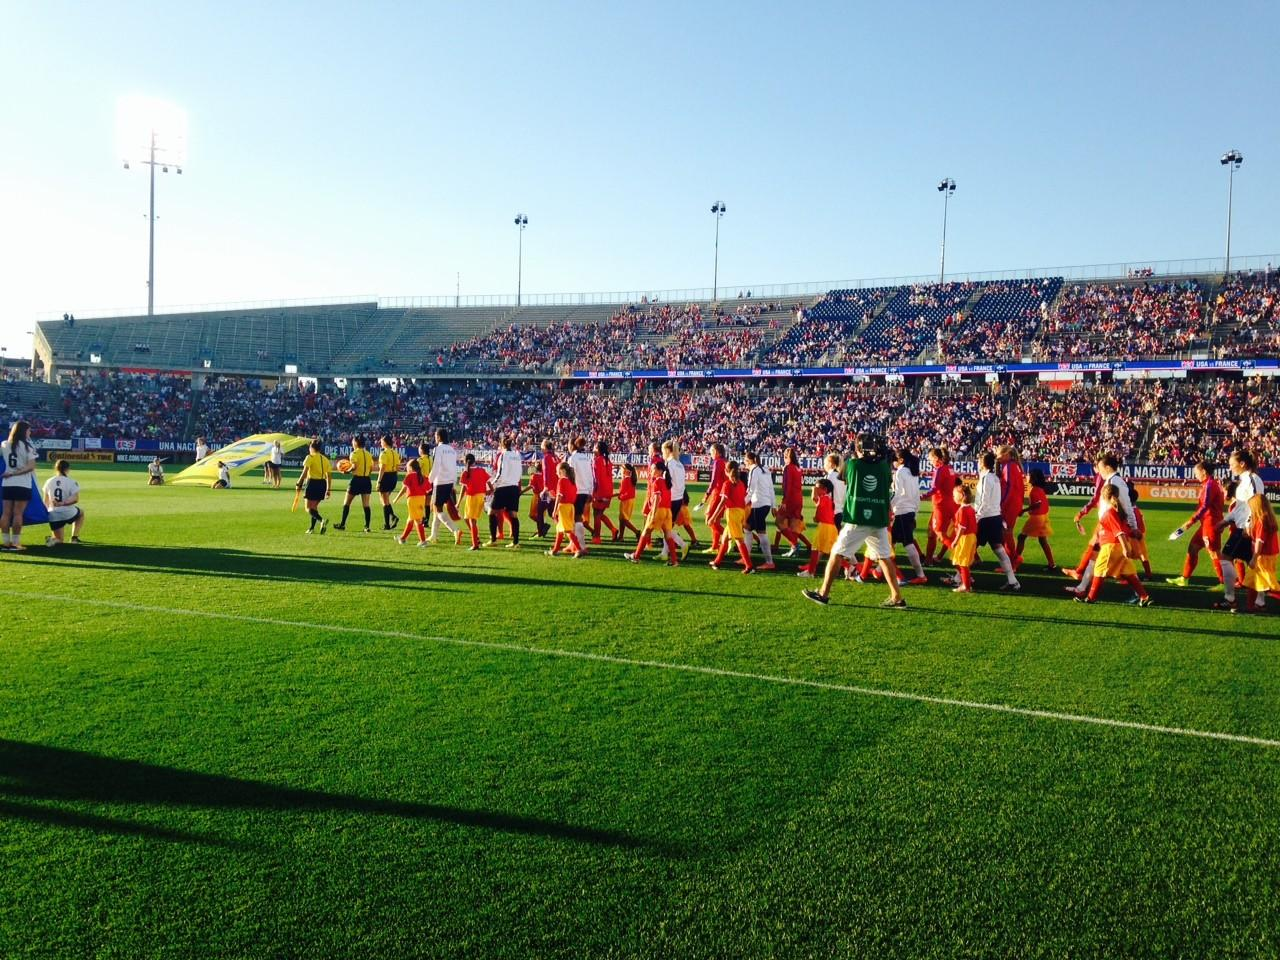 Players from the U.S. Women's National Soccer Team are escorted on to Rentscler Field by members of the Hartwell Soccer Club.